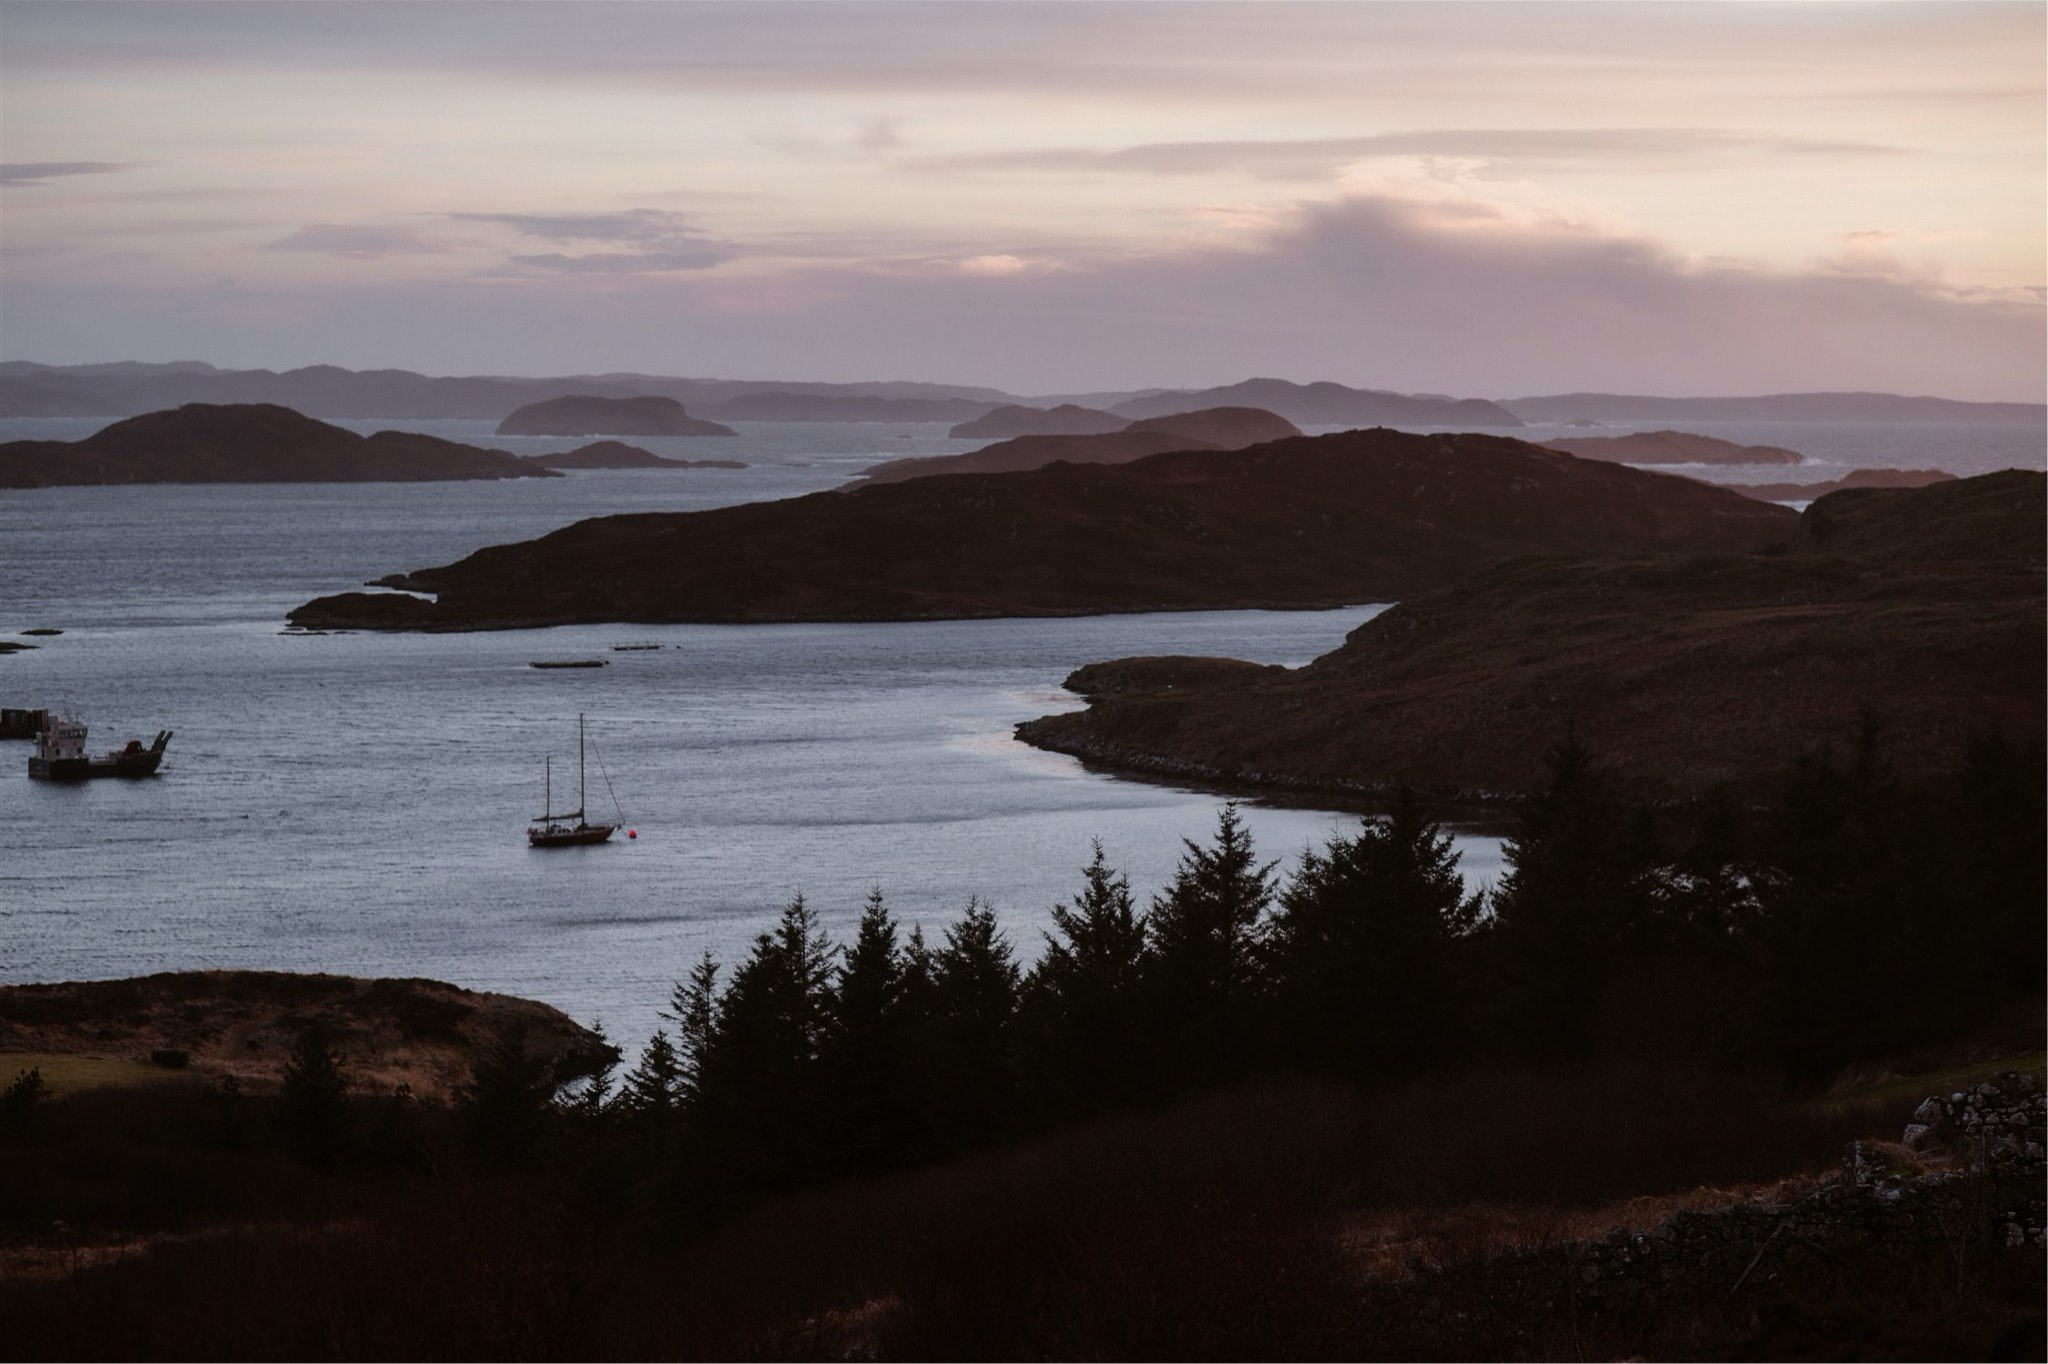 Sea views with boats at sunset in Assynt, Scotland - on the North Coast 500